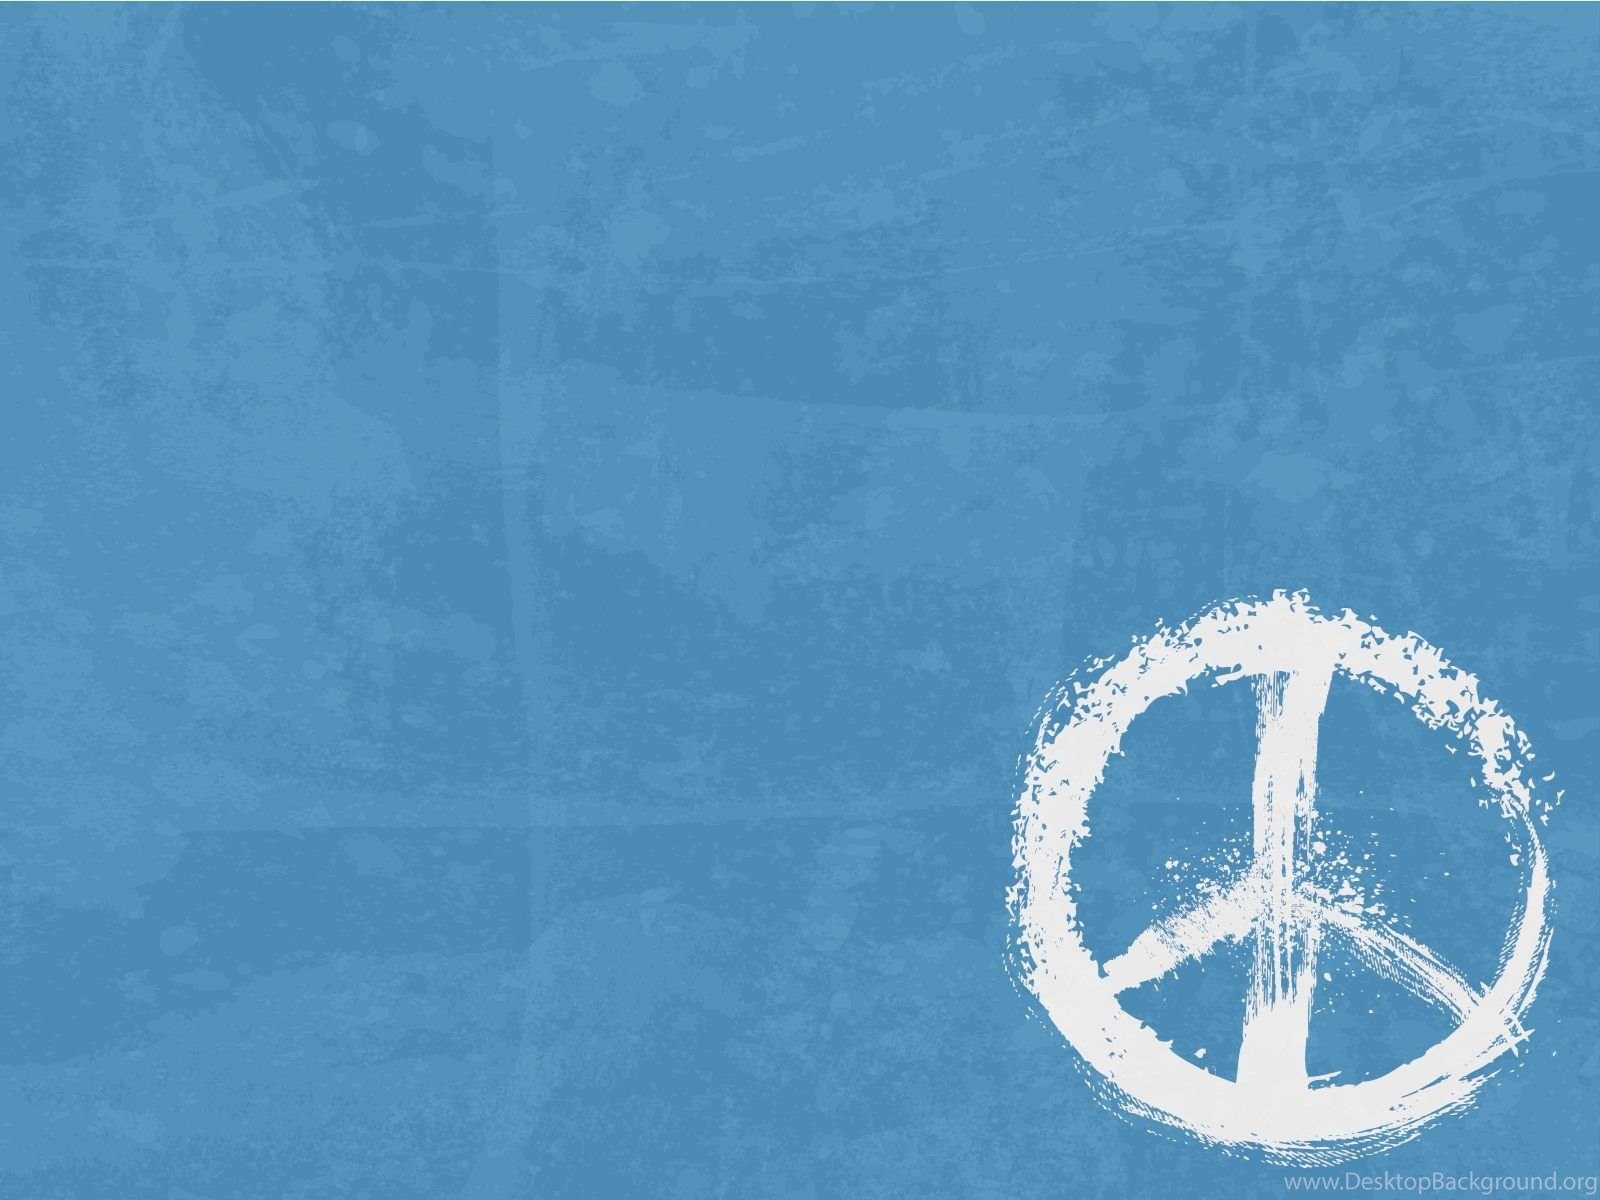 Peace sign powerpoint templates blue objects free ppt backgrounds fullscreen toneelgroepblik Gallery